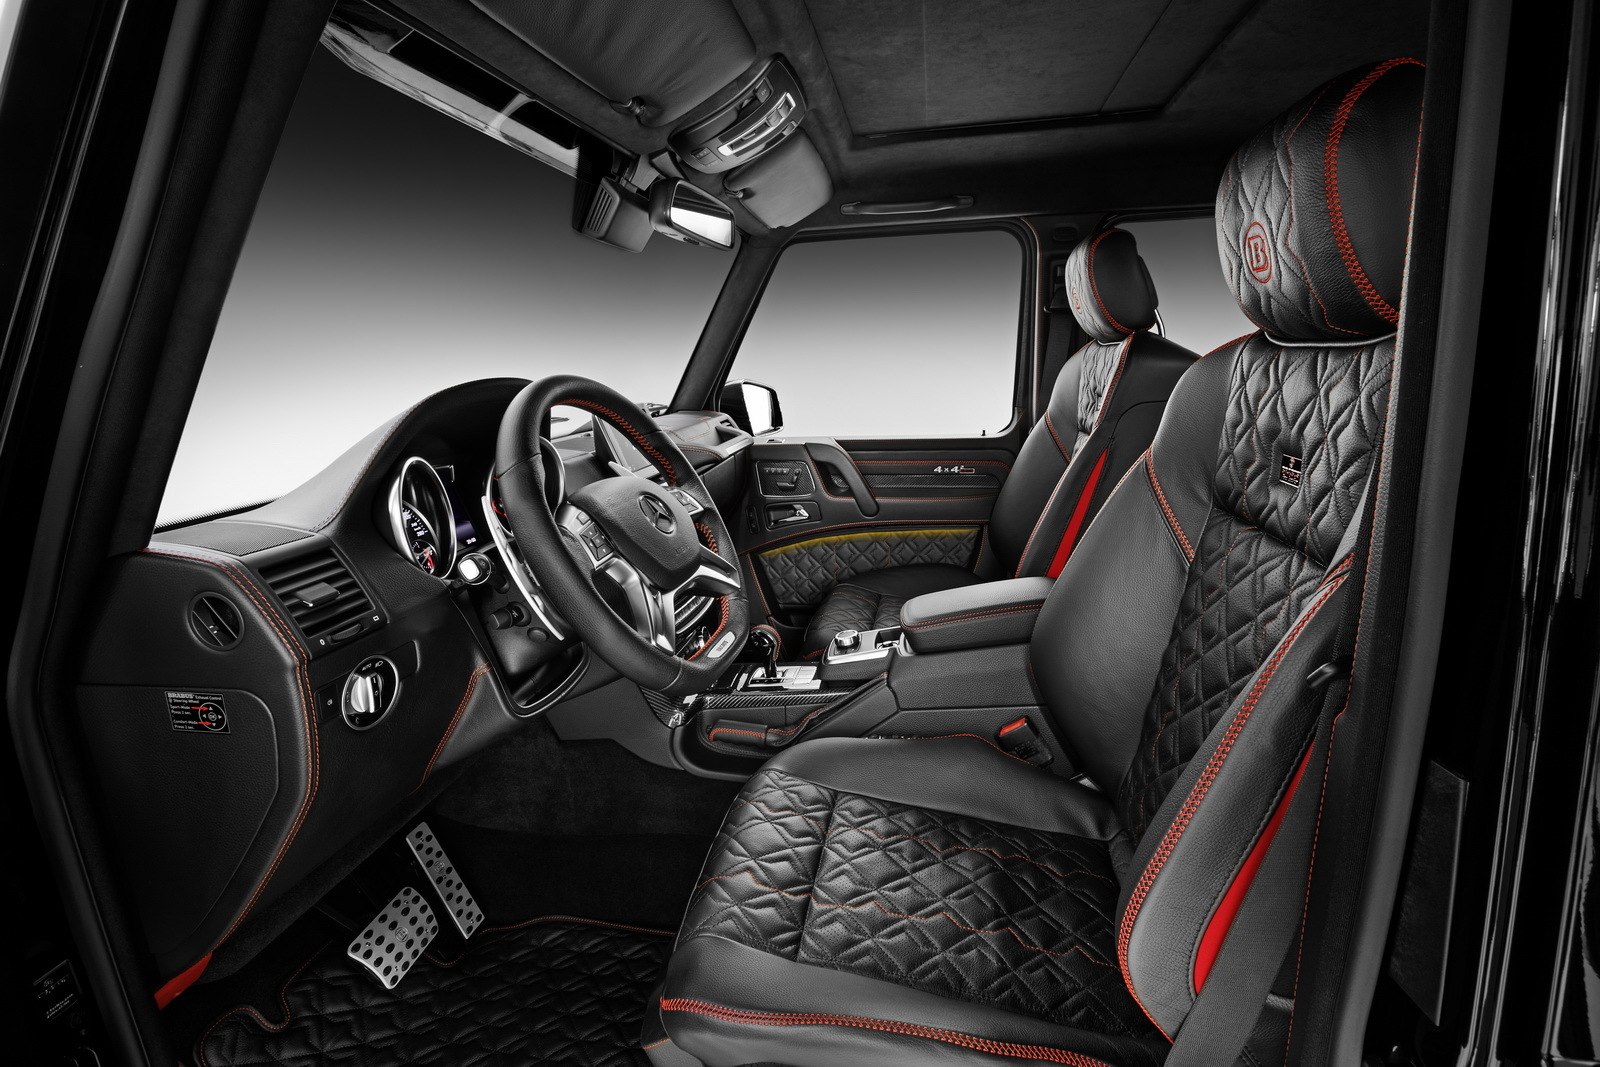 ' ' from the web at 'http://www.blogcdn.com/slideshows/images/slides/362/039/9/S3620399/slug/l/brabus-mercedes-benz-g-500-4-x-4-009-1.jpg'